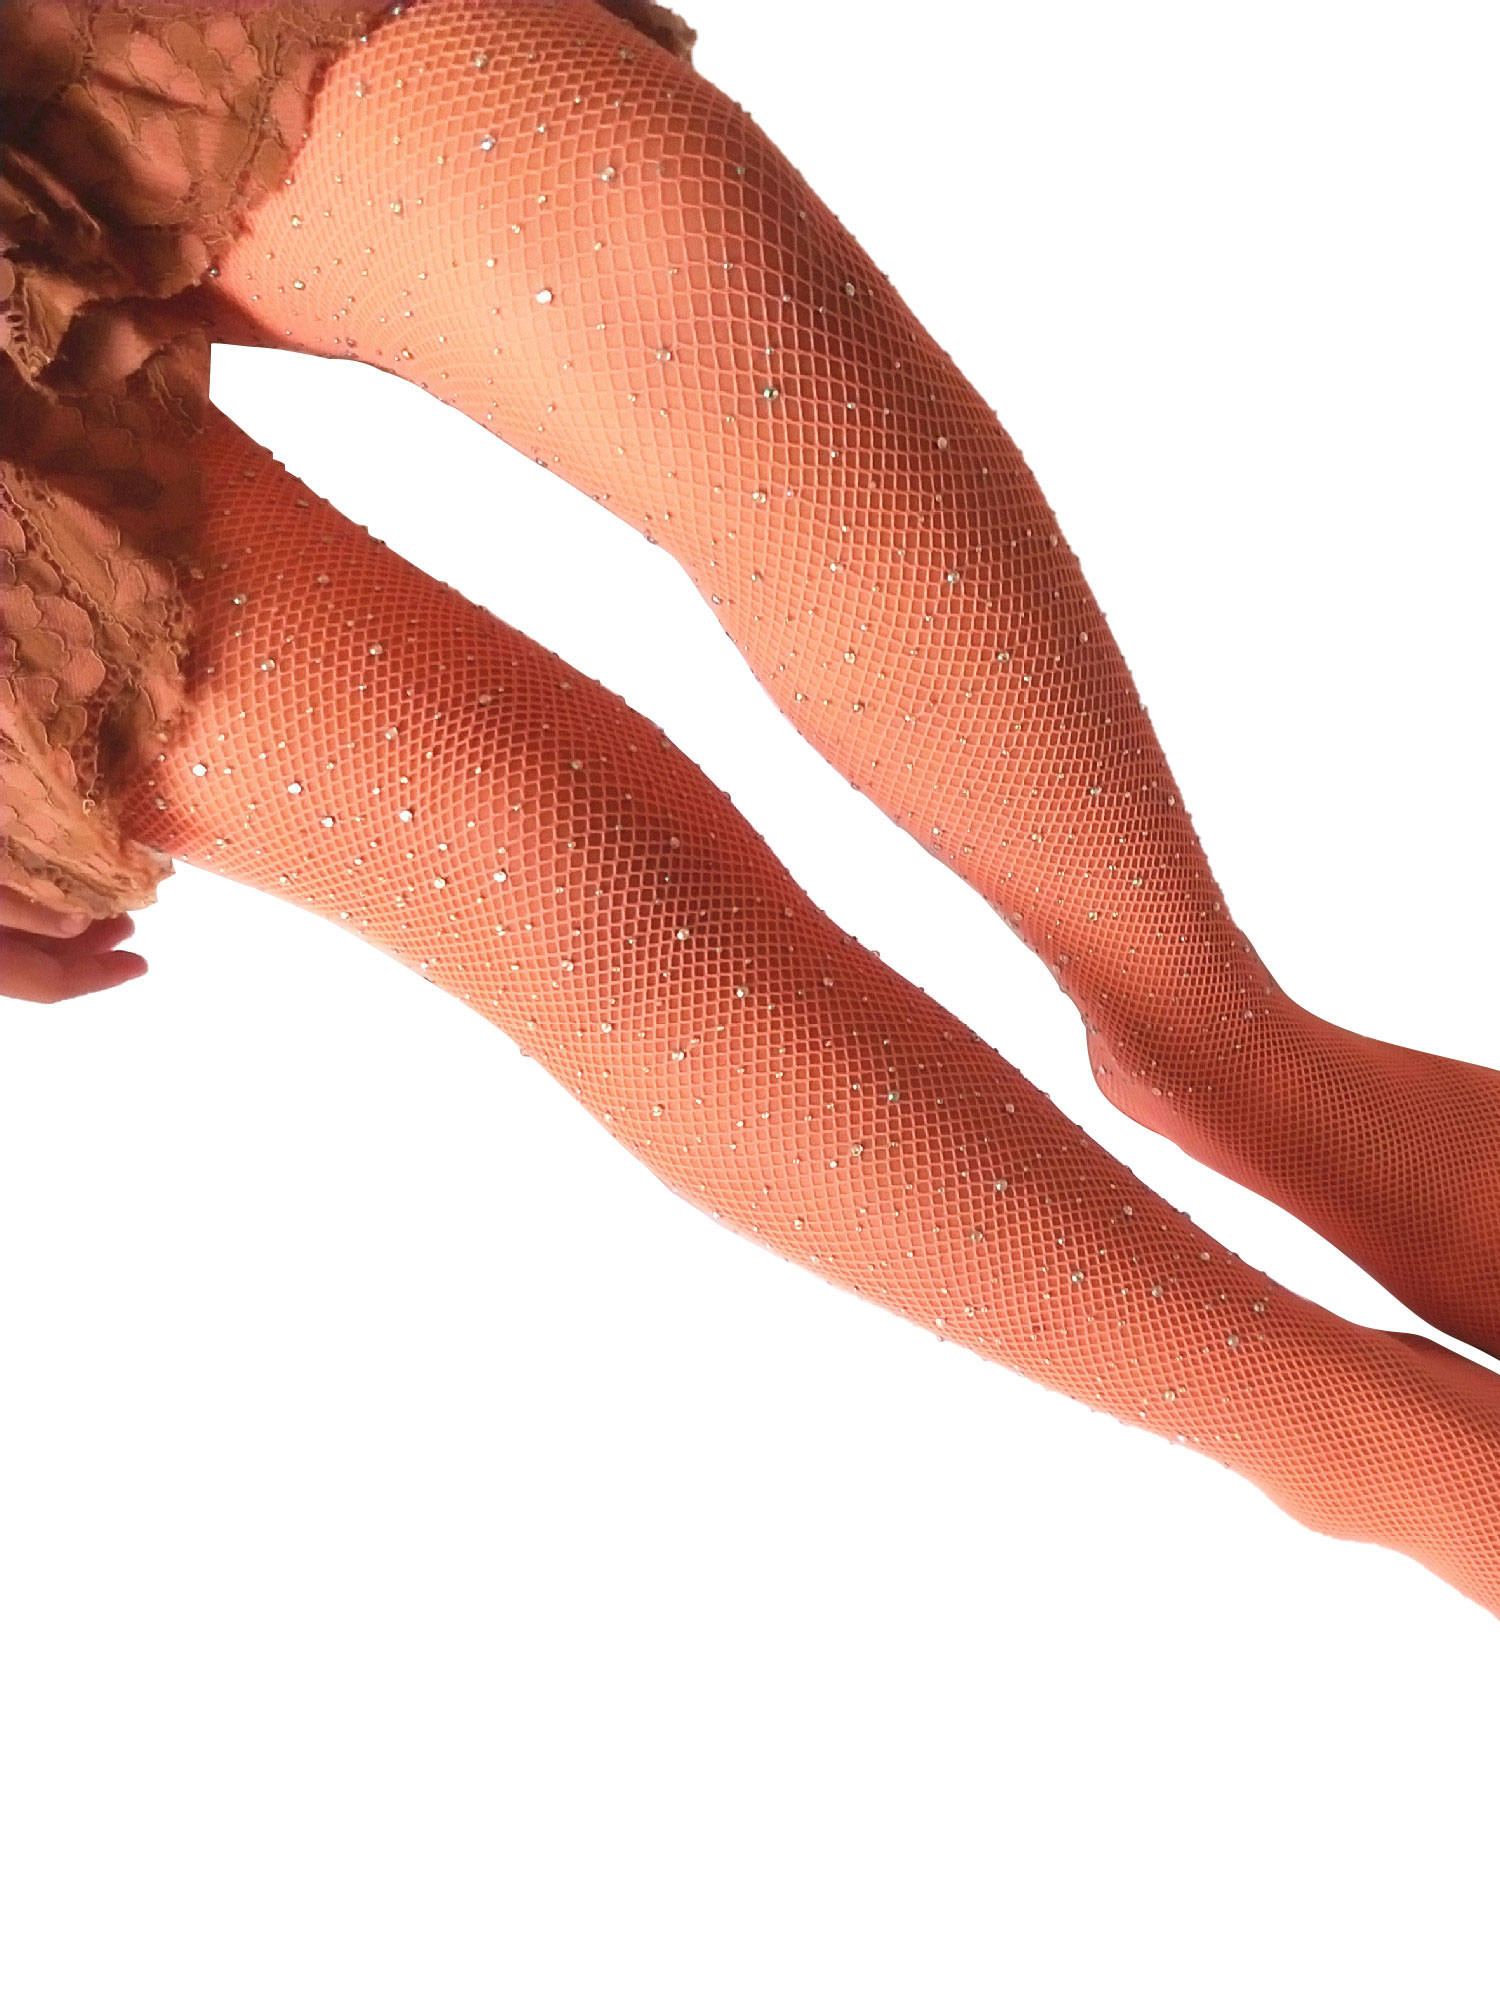 Details about  /Kids Girls Gymnastics Ballet Dance Tights Opaque Pantyhose Long Stockings Socks